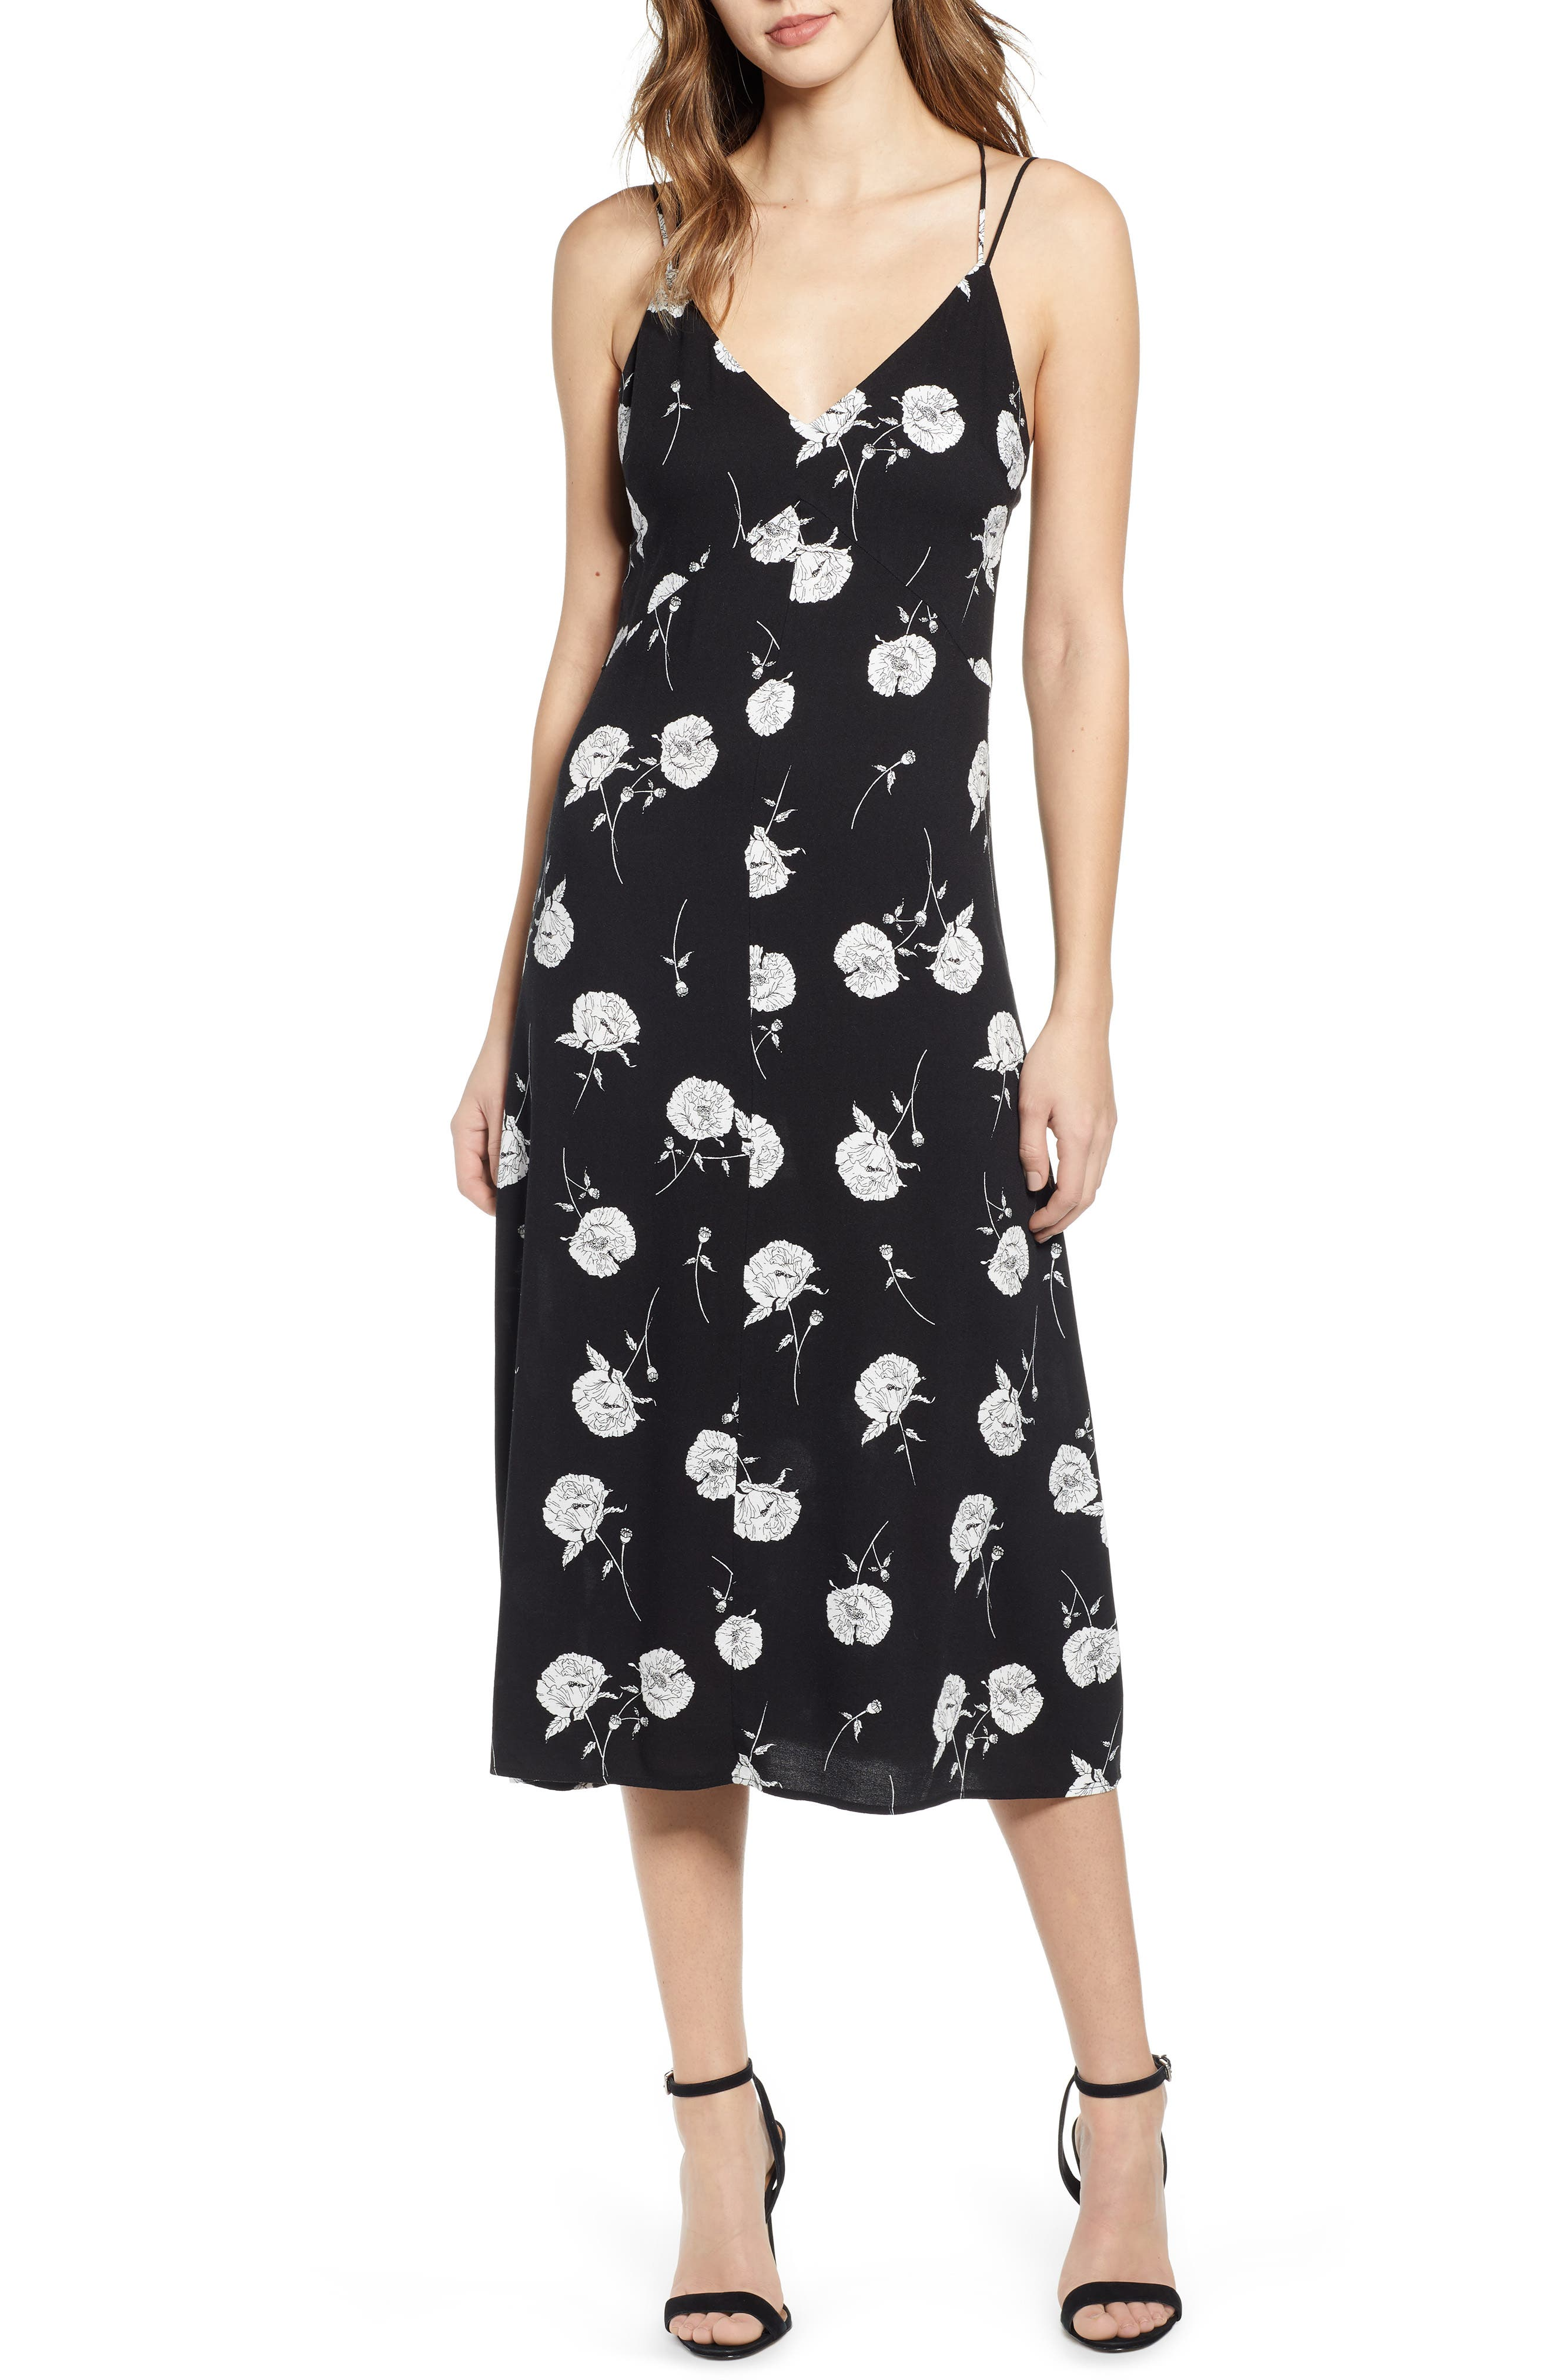 LEITH, Floral Strappy Midi Dress, Main thumbnail 1, color, BLACK TWO FLORAL